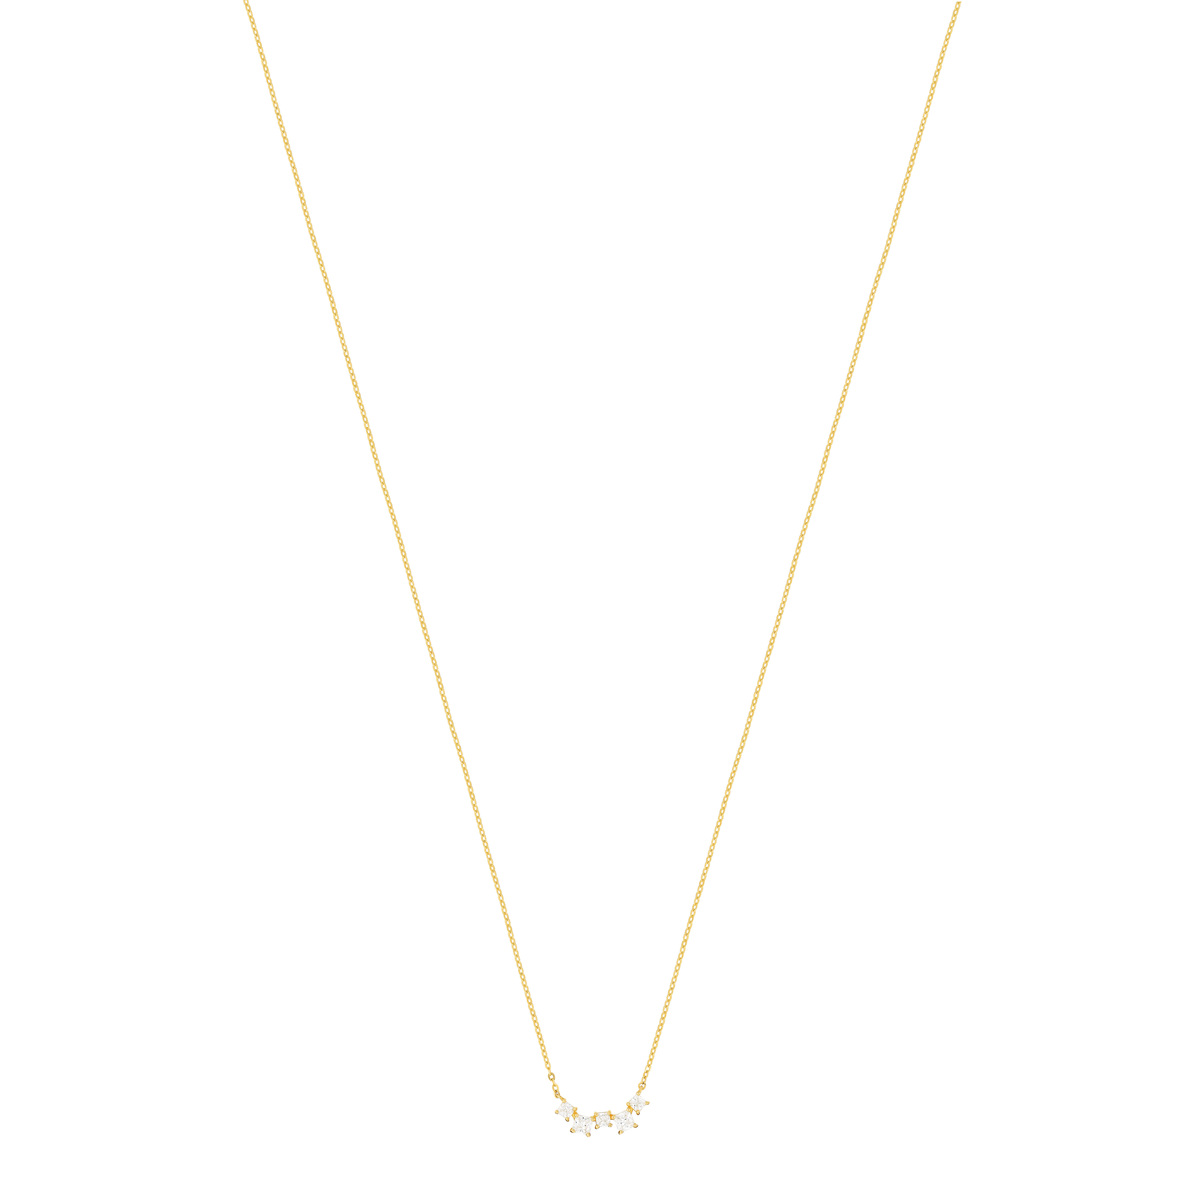 Collier or jaune 375 zirconias 42 cm - vue 1